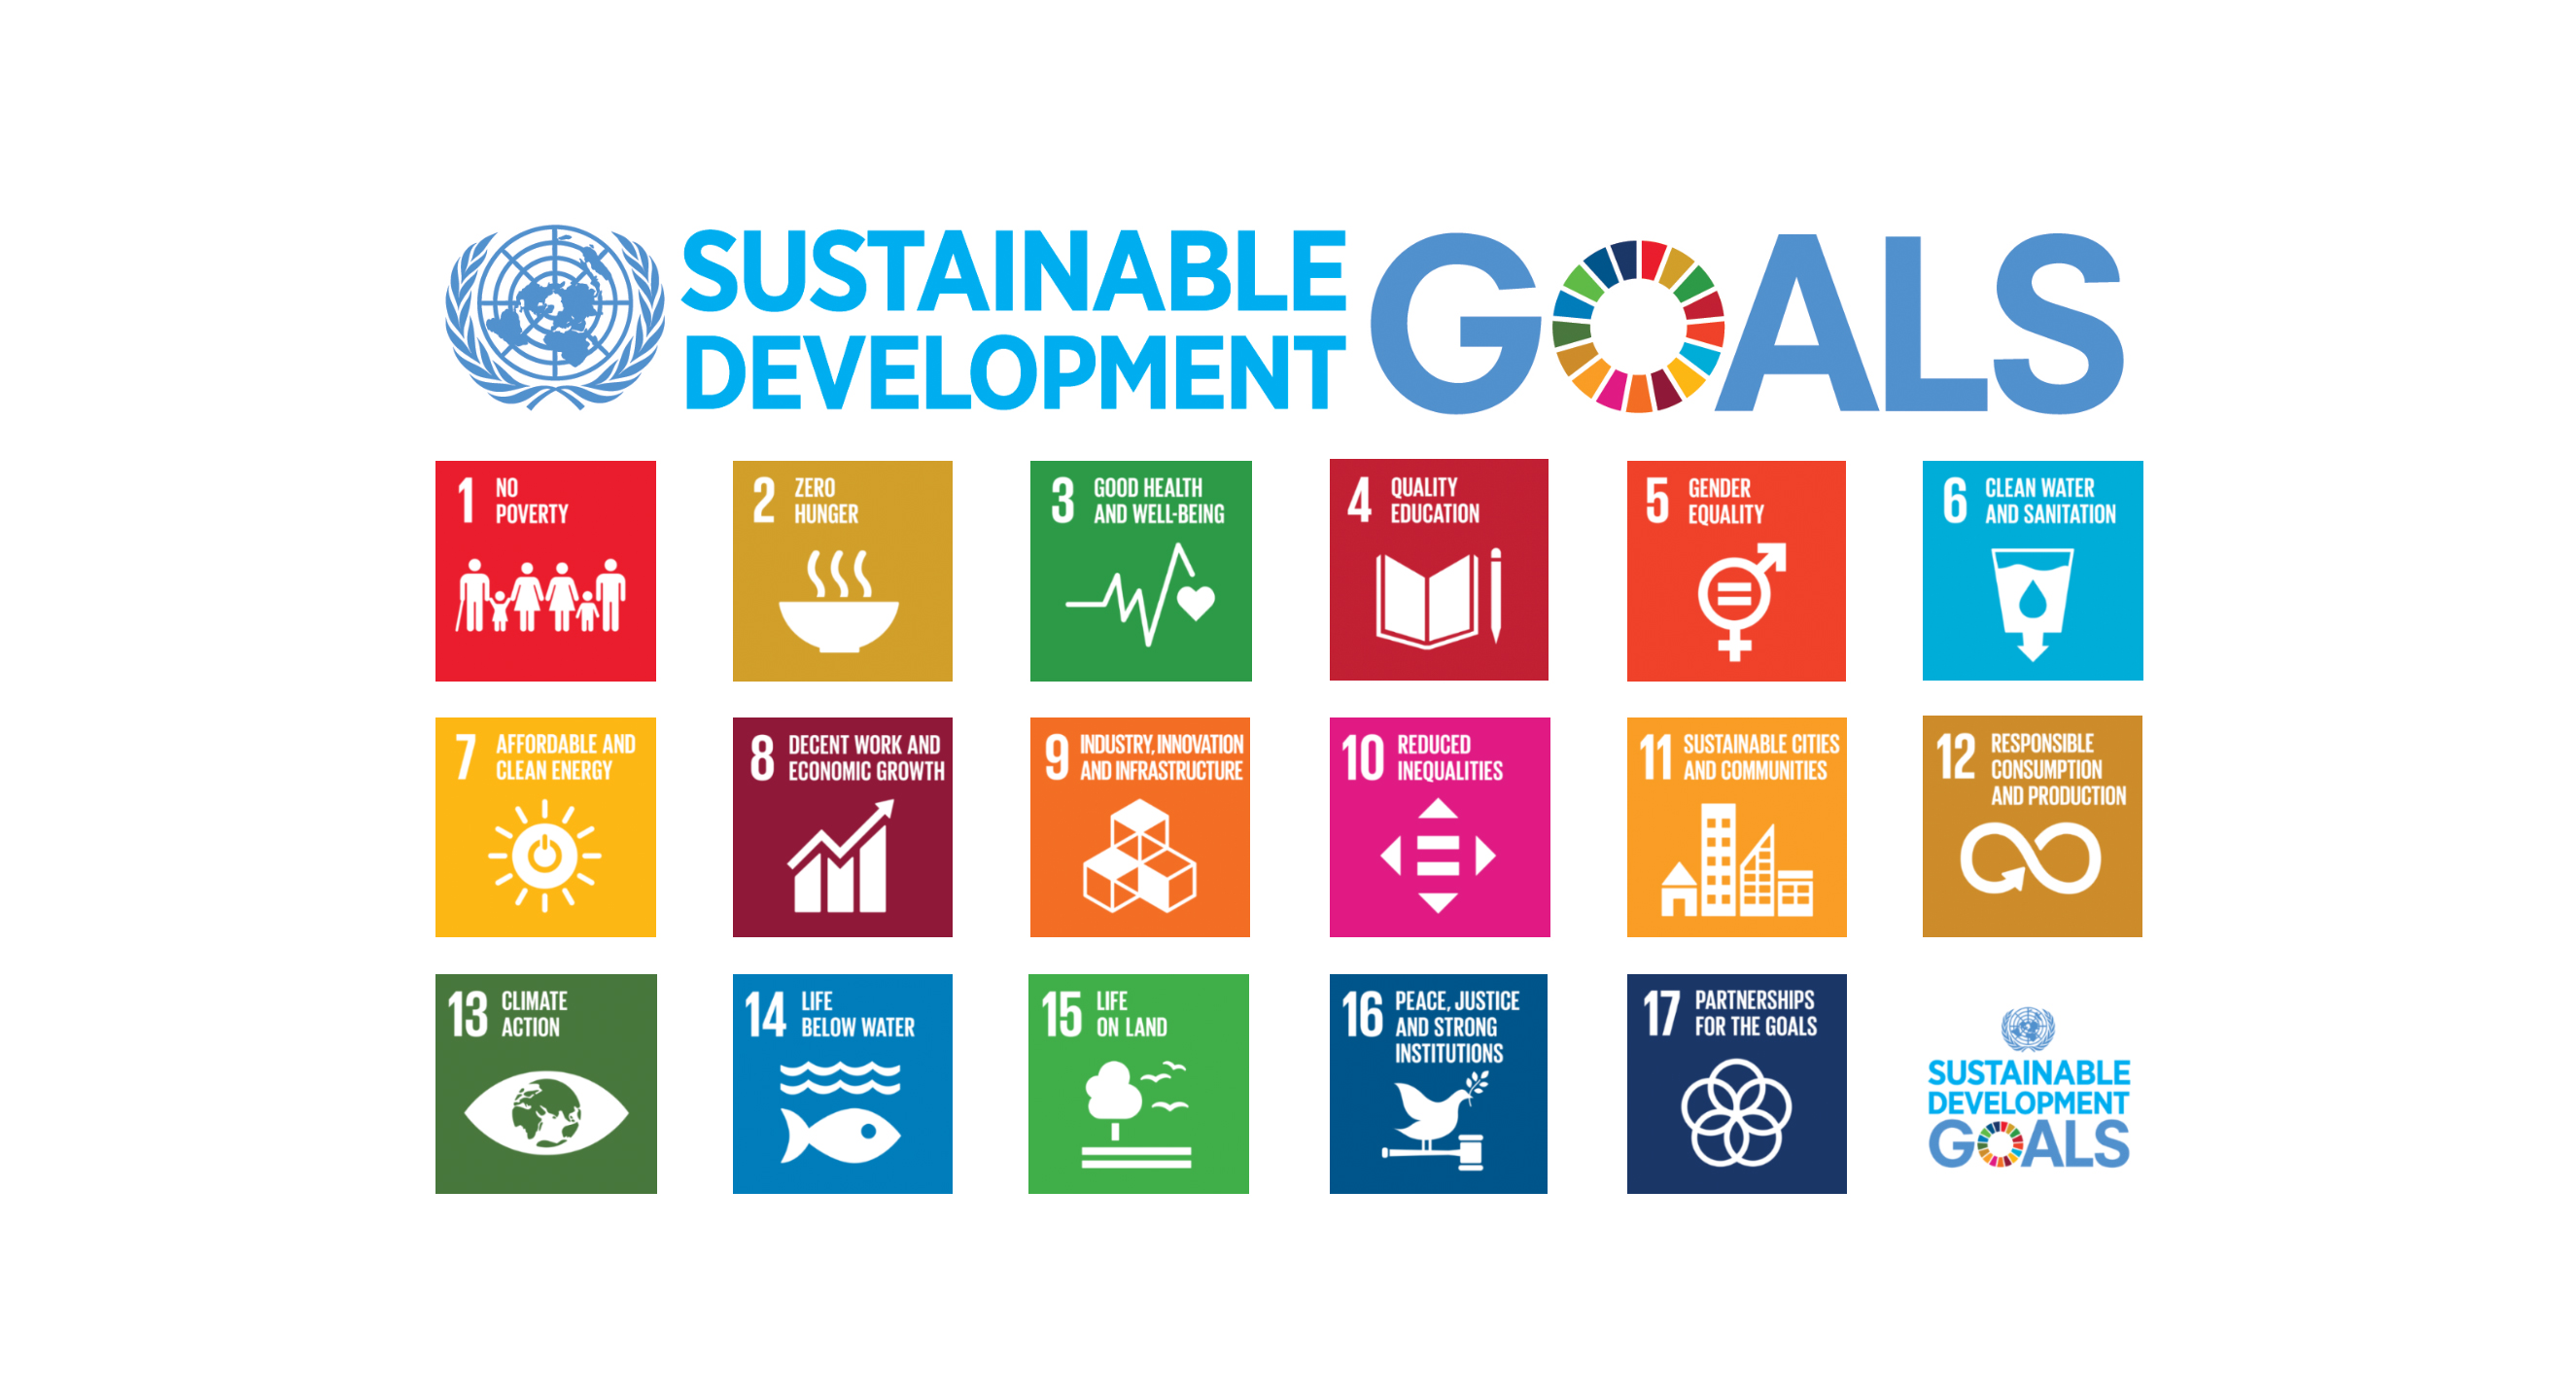 AVK, Sustainable development goals, no. 6,  Water and sanitation for all, Valves, Value, QUALITY, SUSTAINABILITY